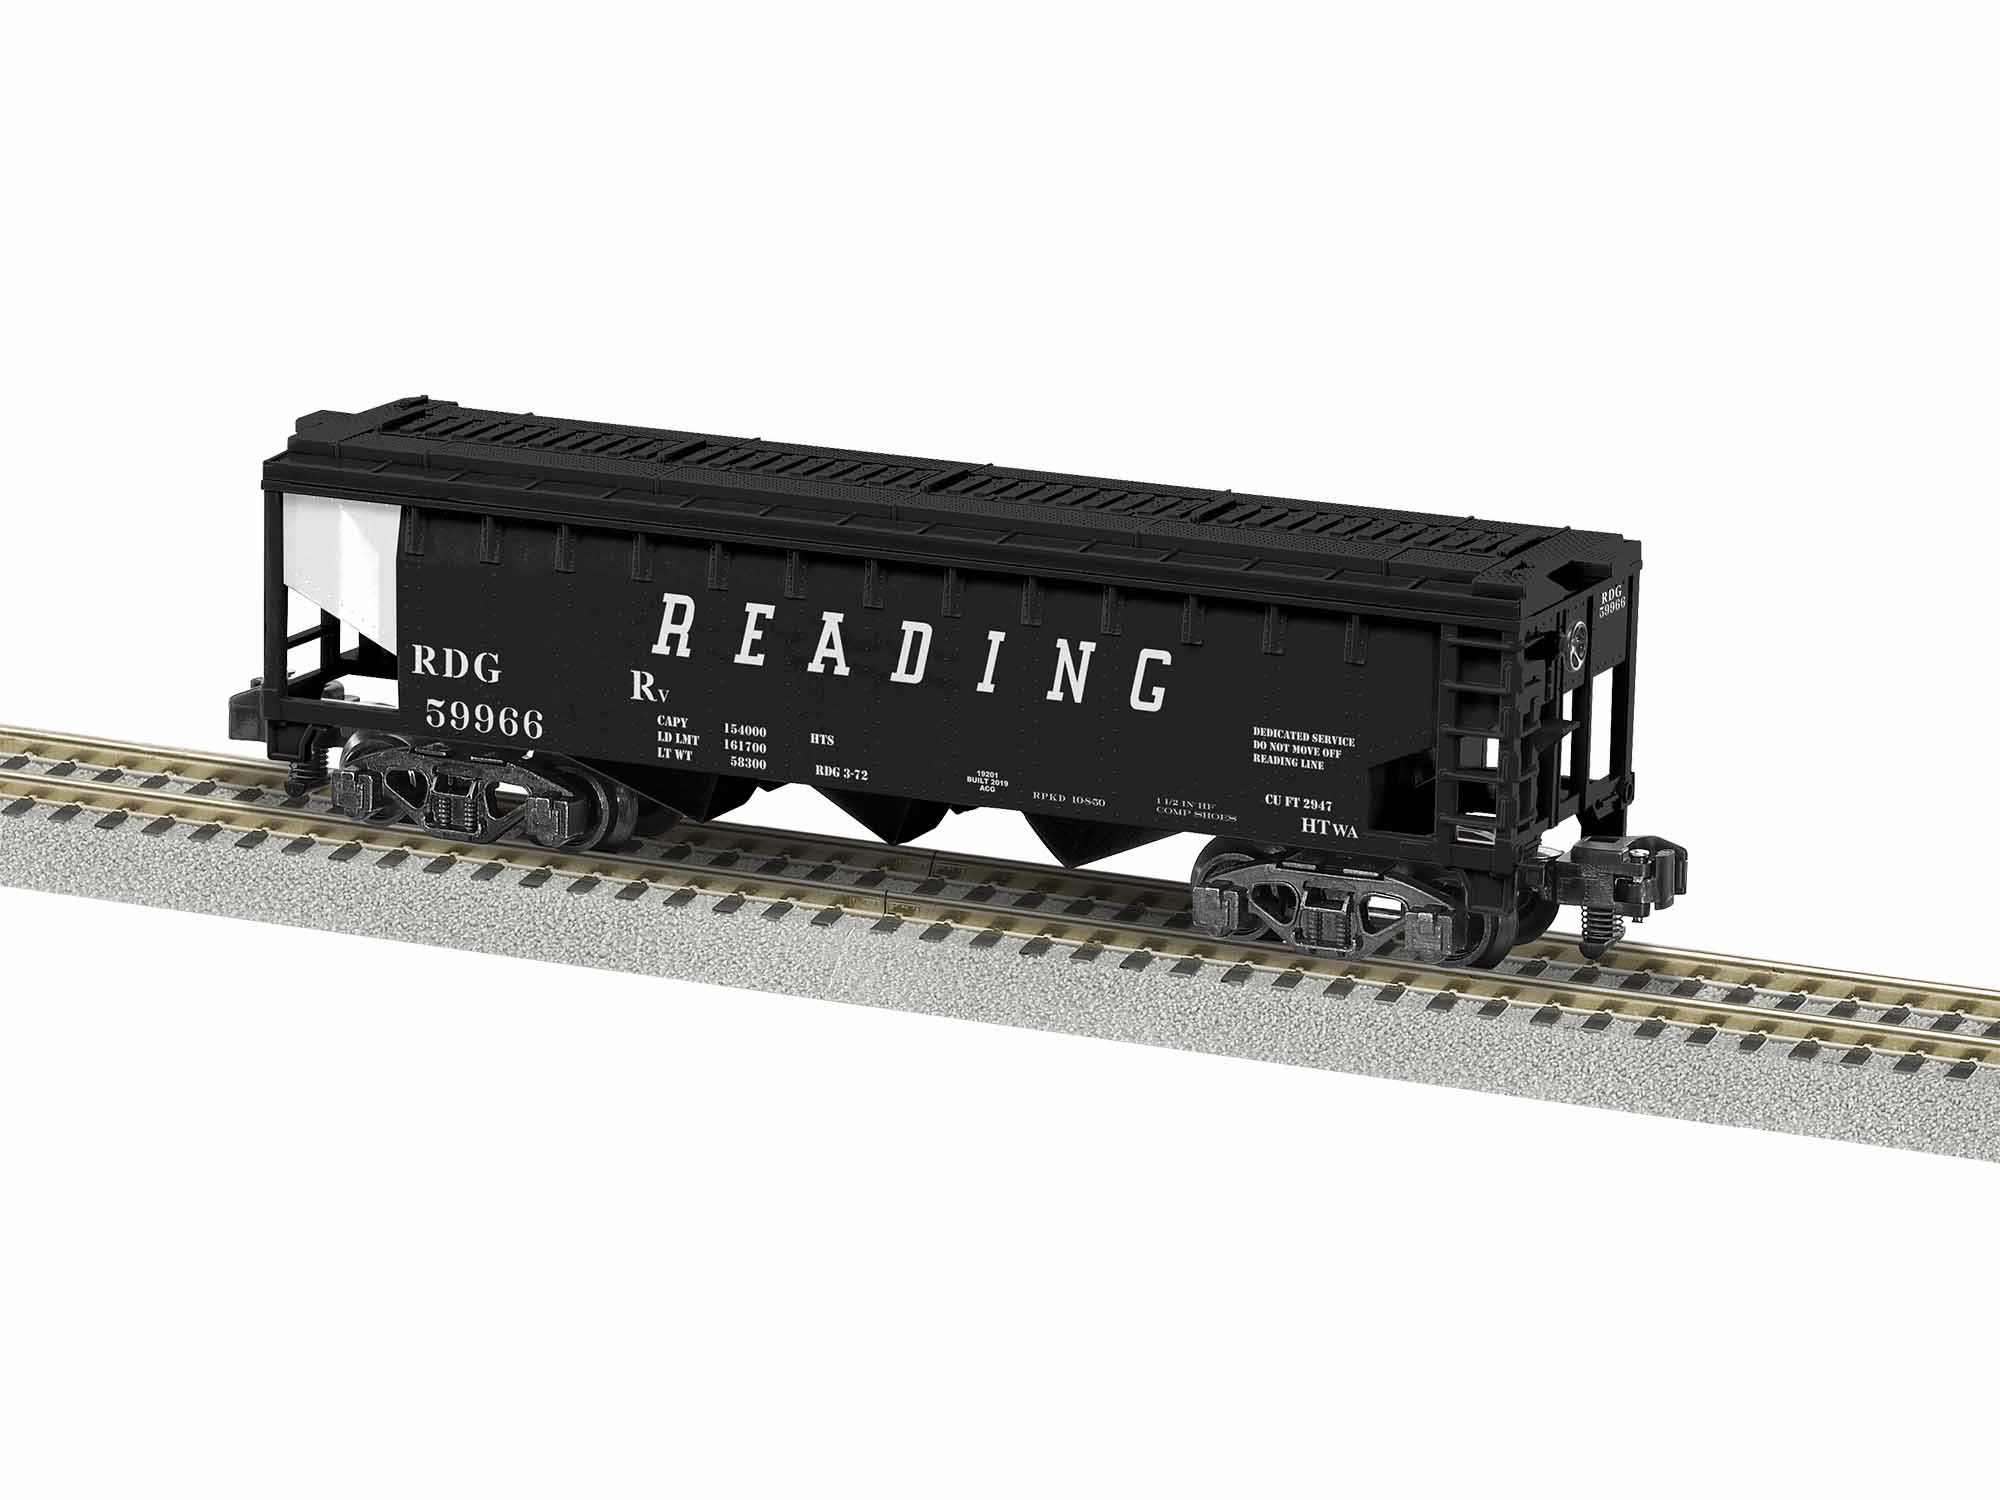 LNL1919202 Lionel S AF 3 Bay Covered Hopper, RDG #59966 434-1919202